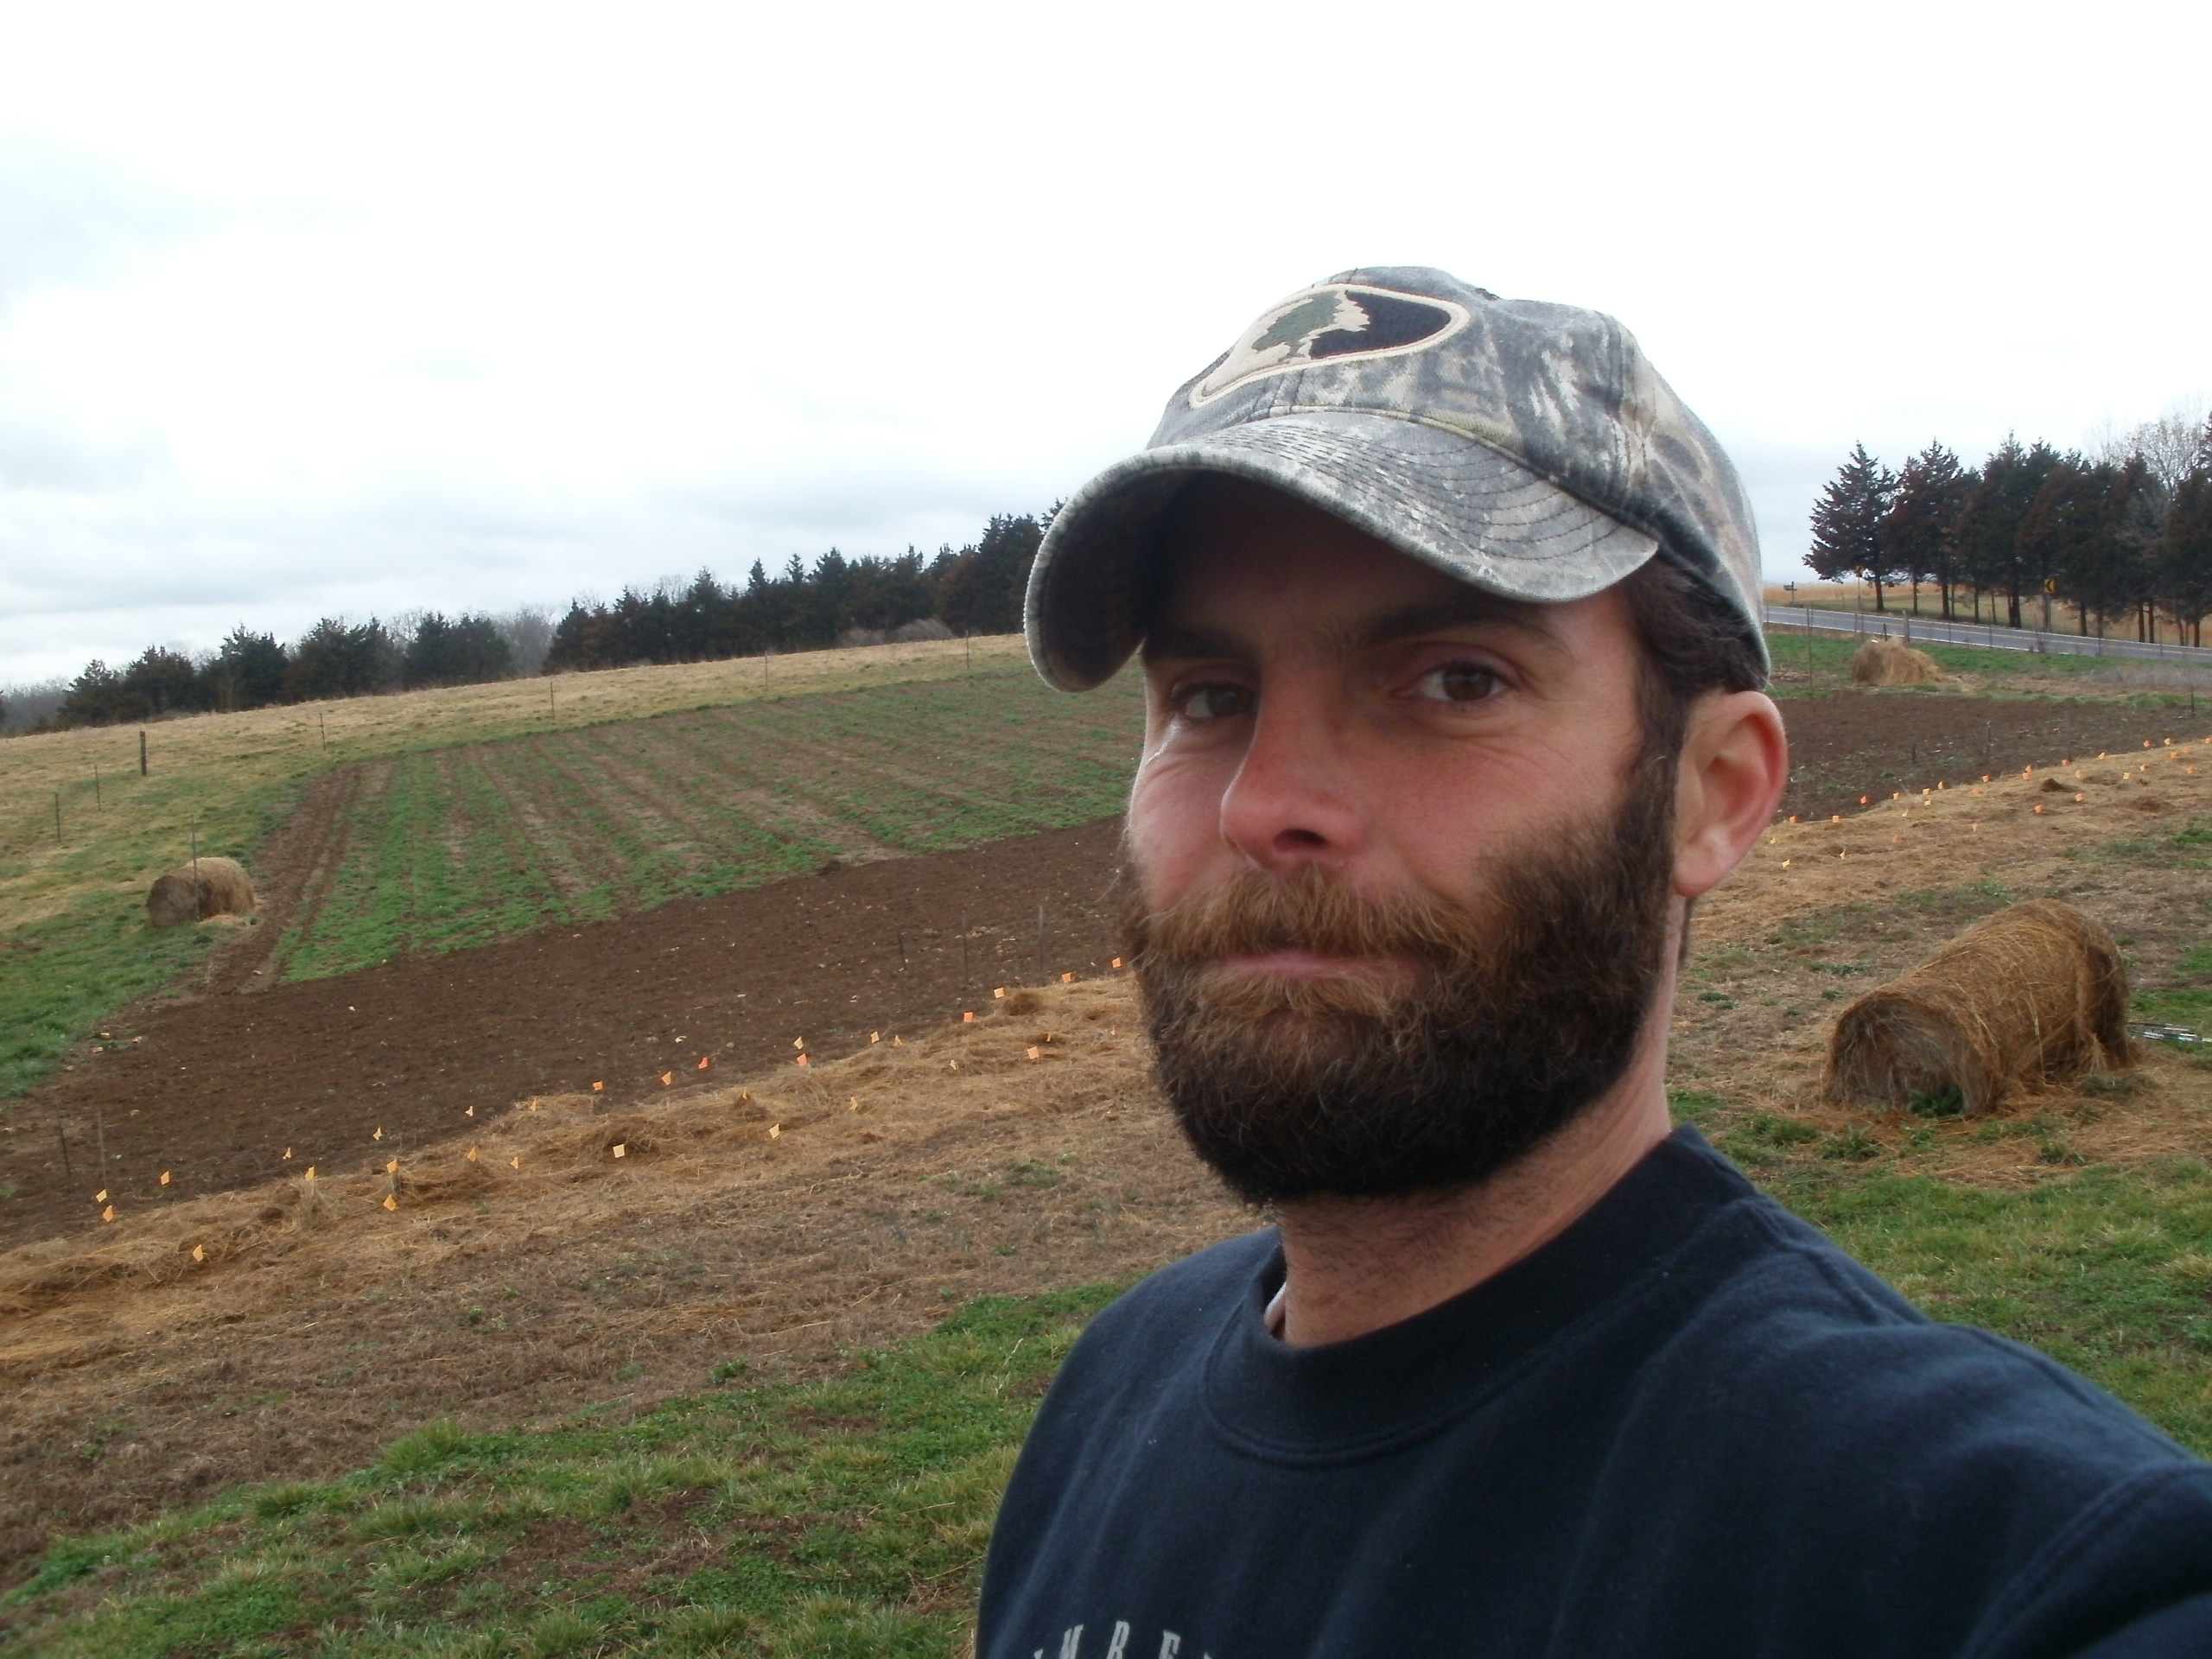 Beard Farmer On Twitter Did You Know The Average Can Grow Up To 5 Inches In A Year Noshaveallyear